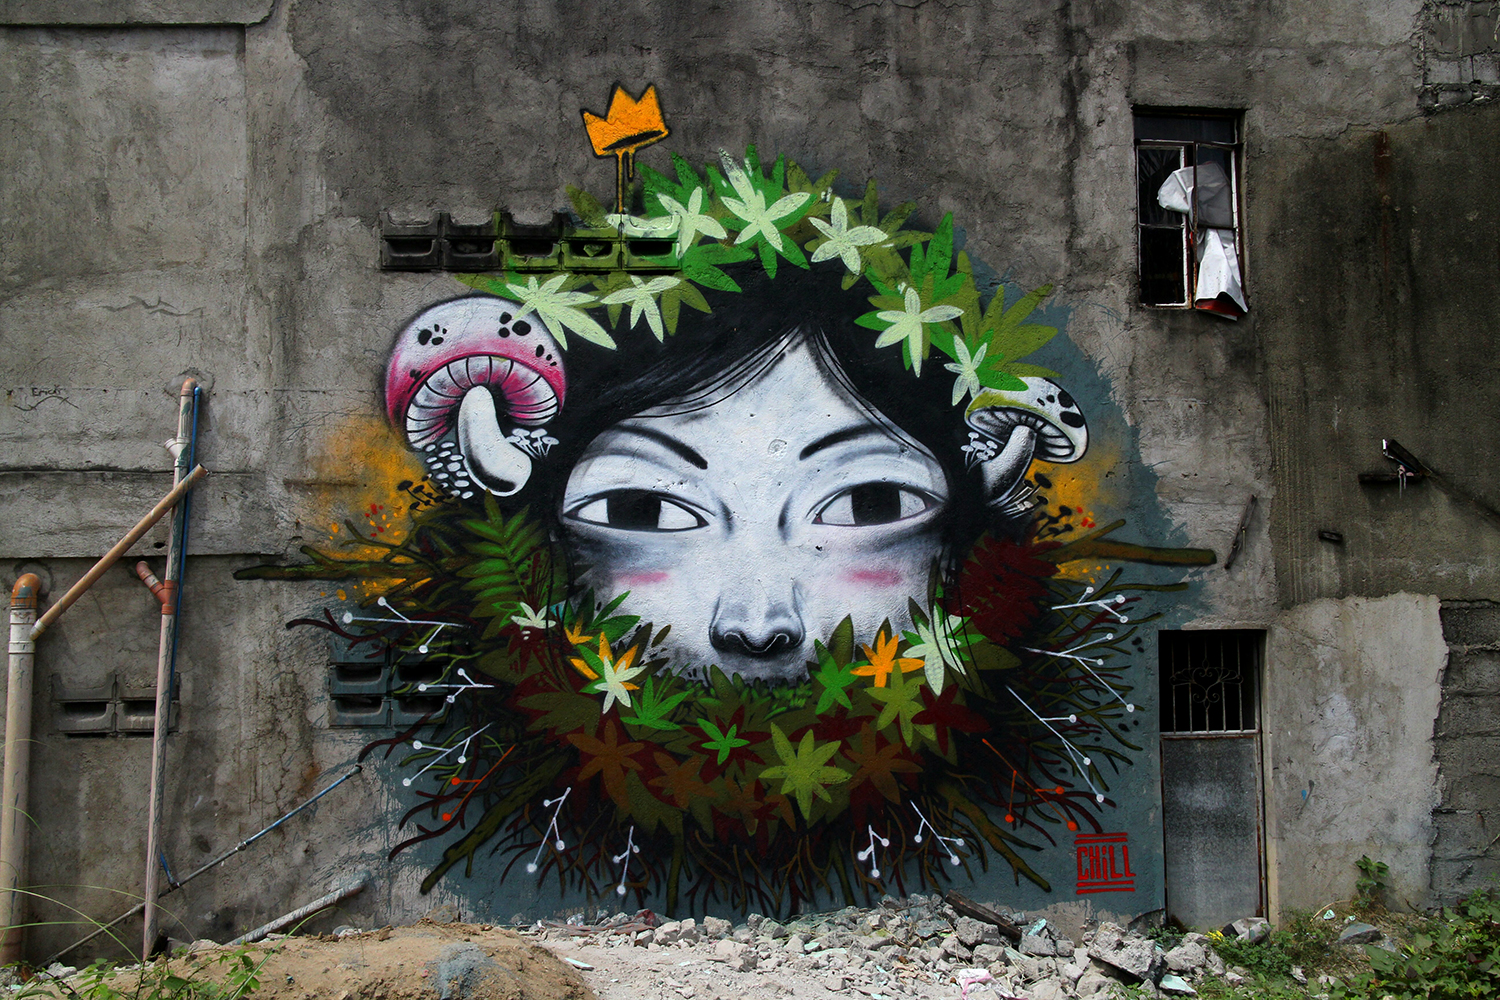 Pilipinas Street Plan and the state of local street art